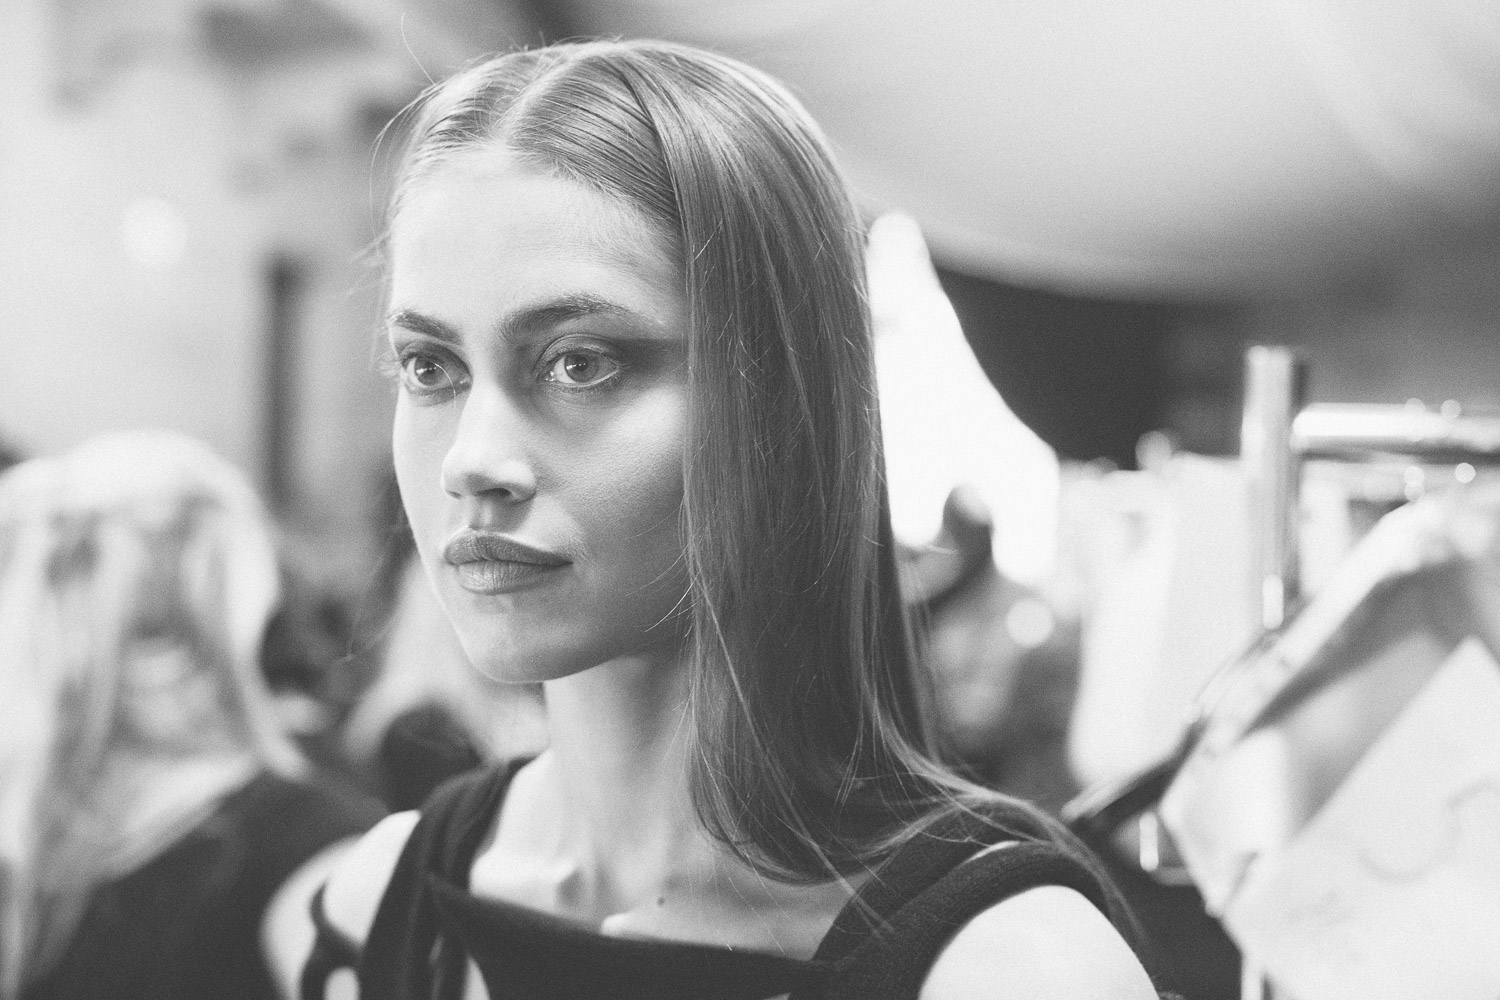 Copenhagen Fashion Week, Stine Ladefoged backstage. By Kasper Nybo Photography.